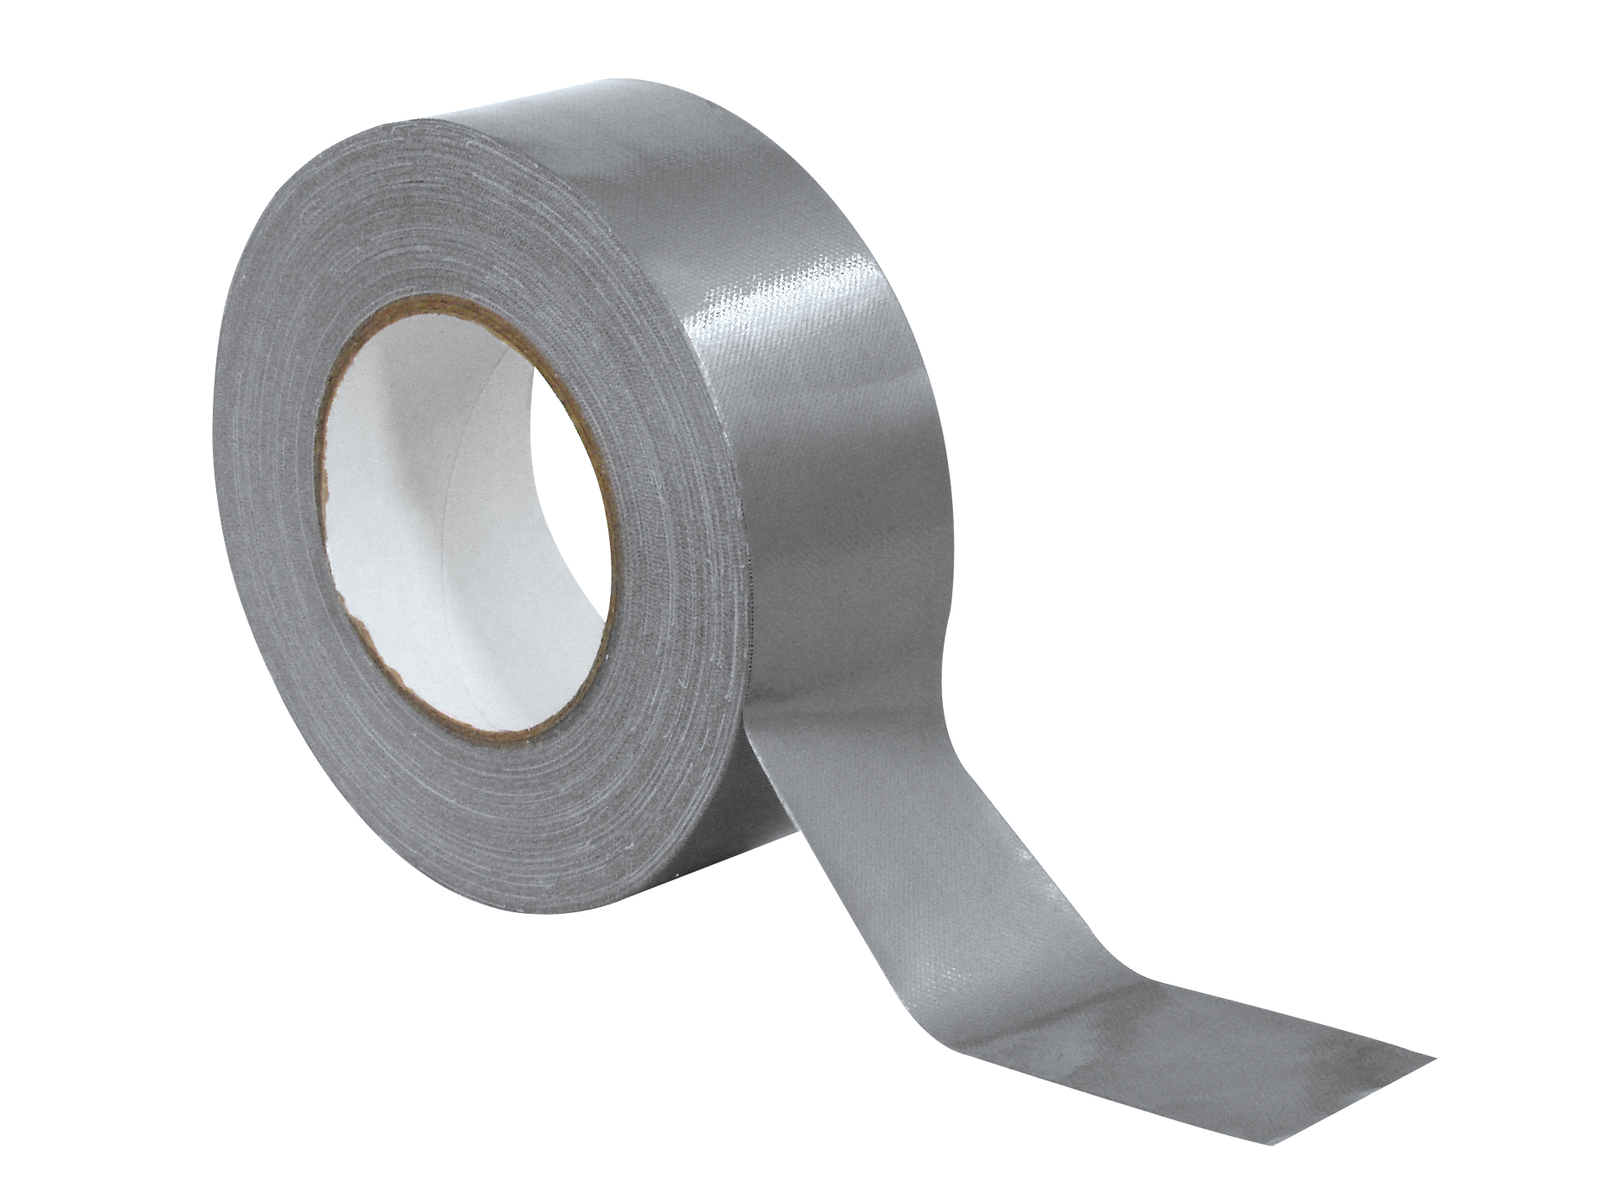 ACCESSORY Tape Gaffa Tape Pro 50mm